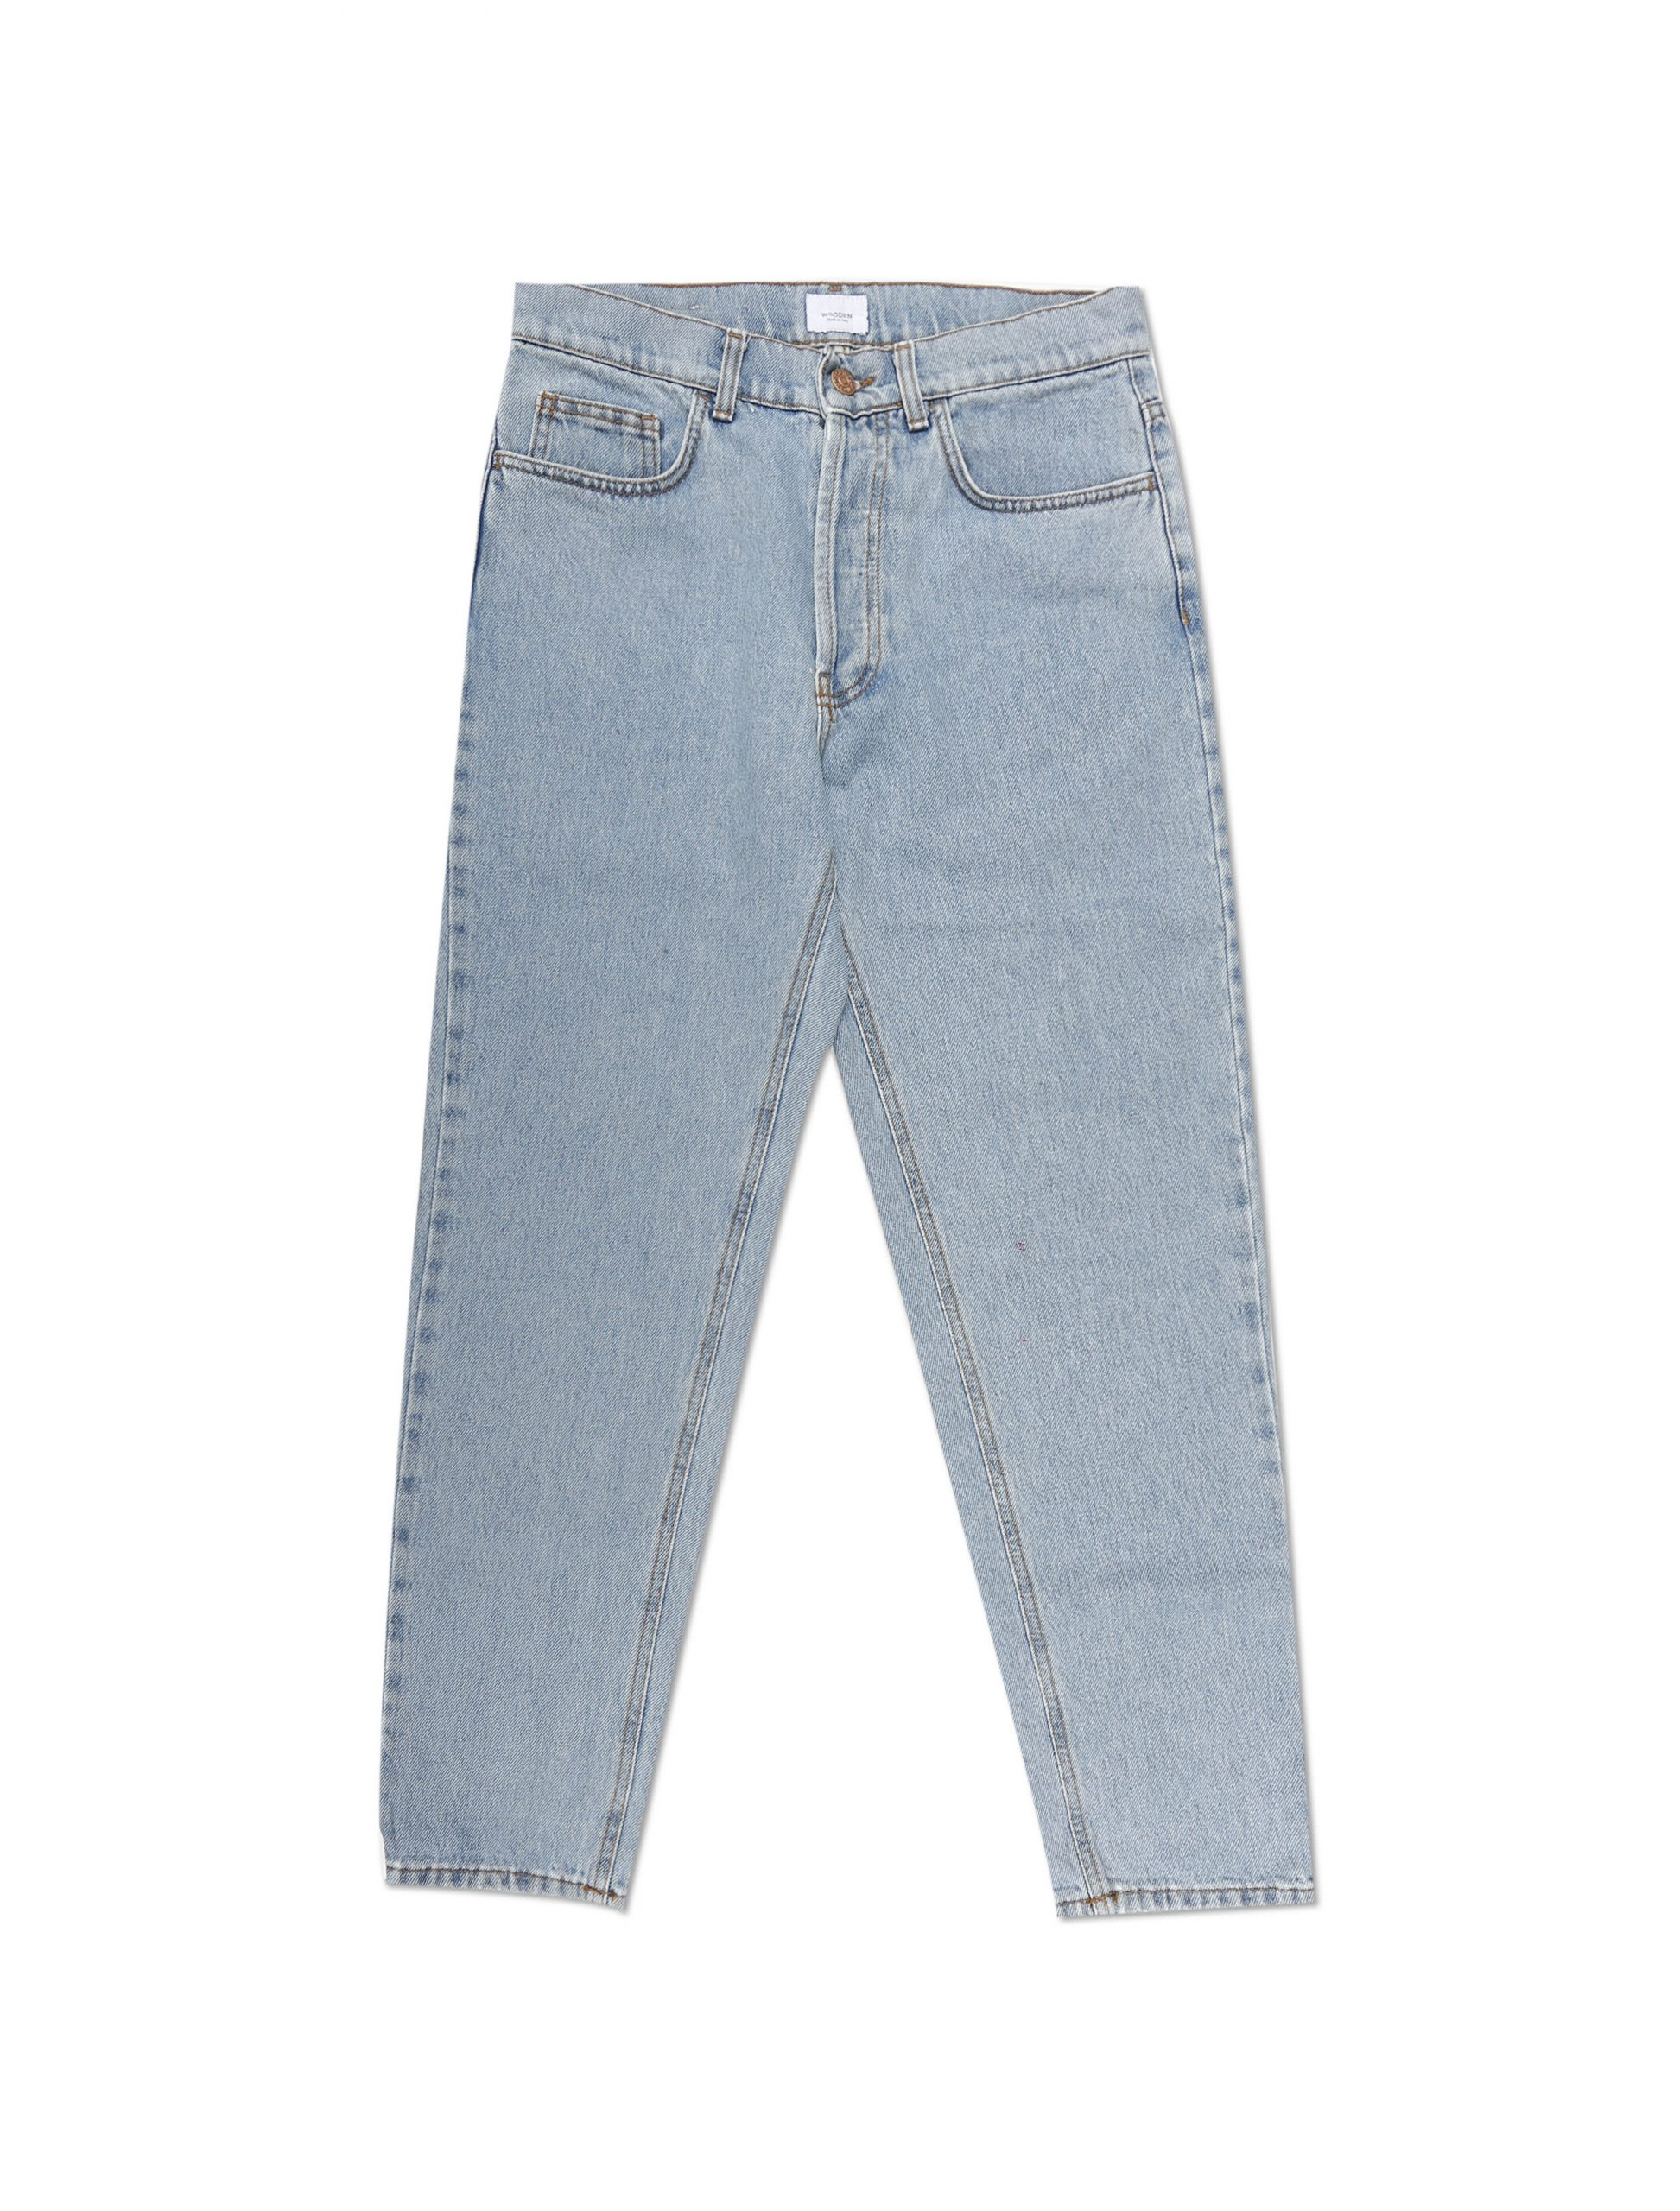 Jeans Replica 11 Bleach | Wooden Store